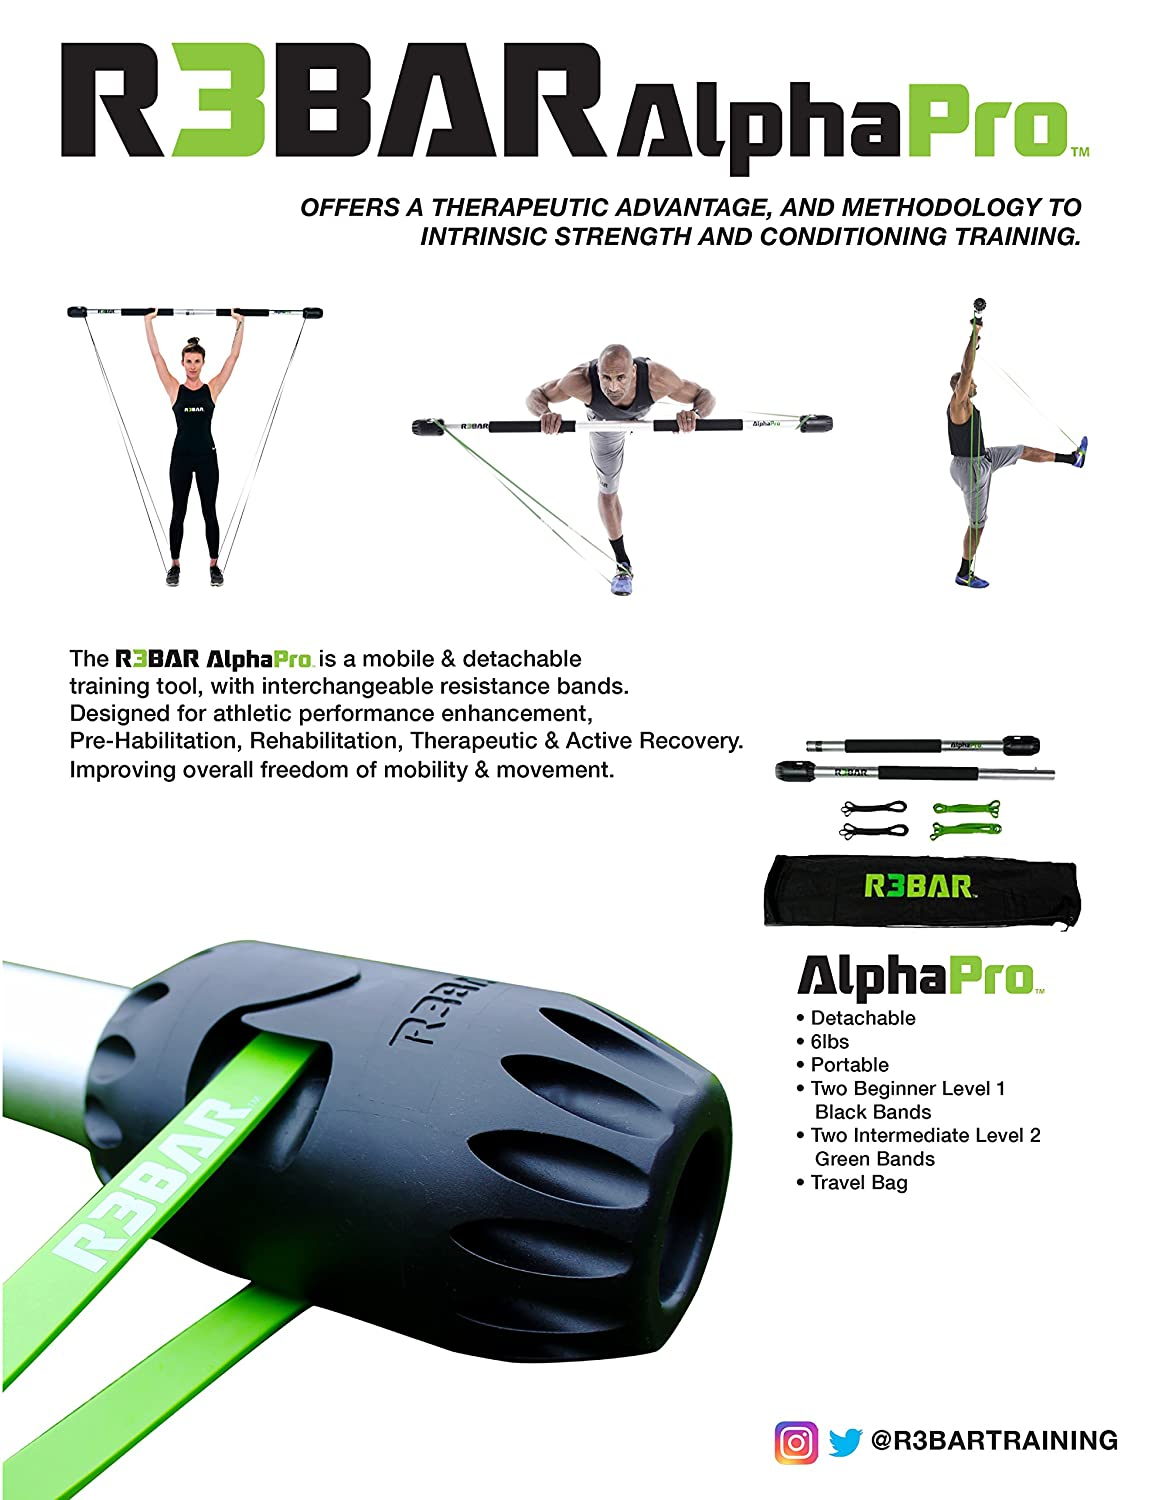 R3BAR AlphaPro Exercise Strength & Conditioning Training Tool for Athletic  Performance Enhancement, Core Stabilization, Pre-habilitation,